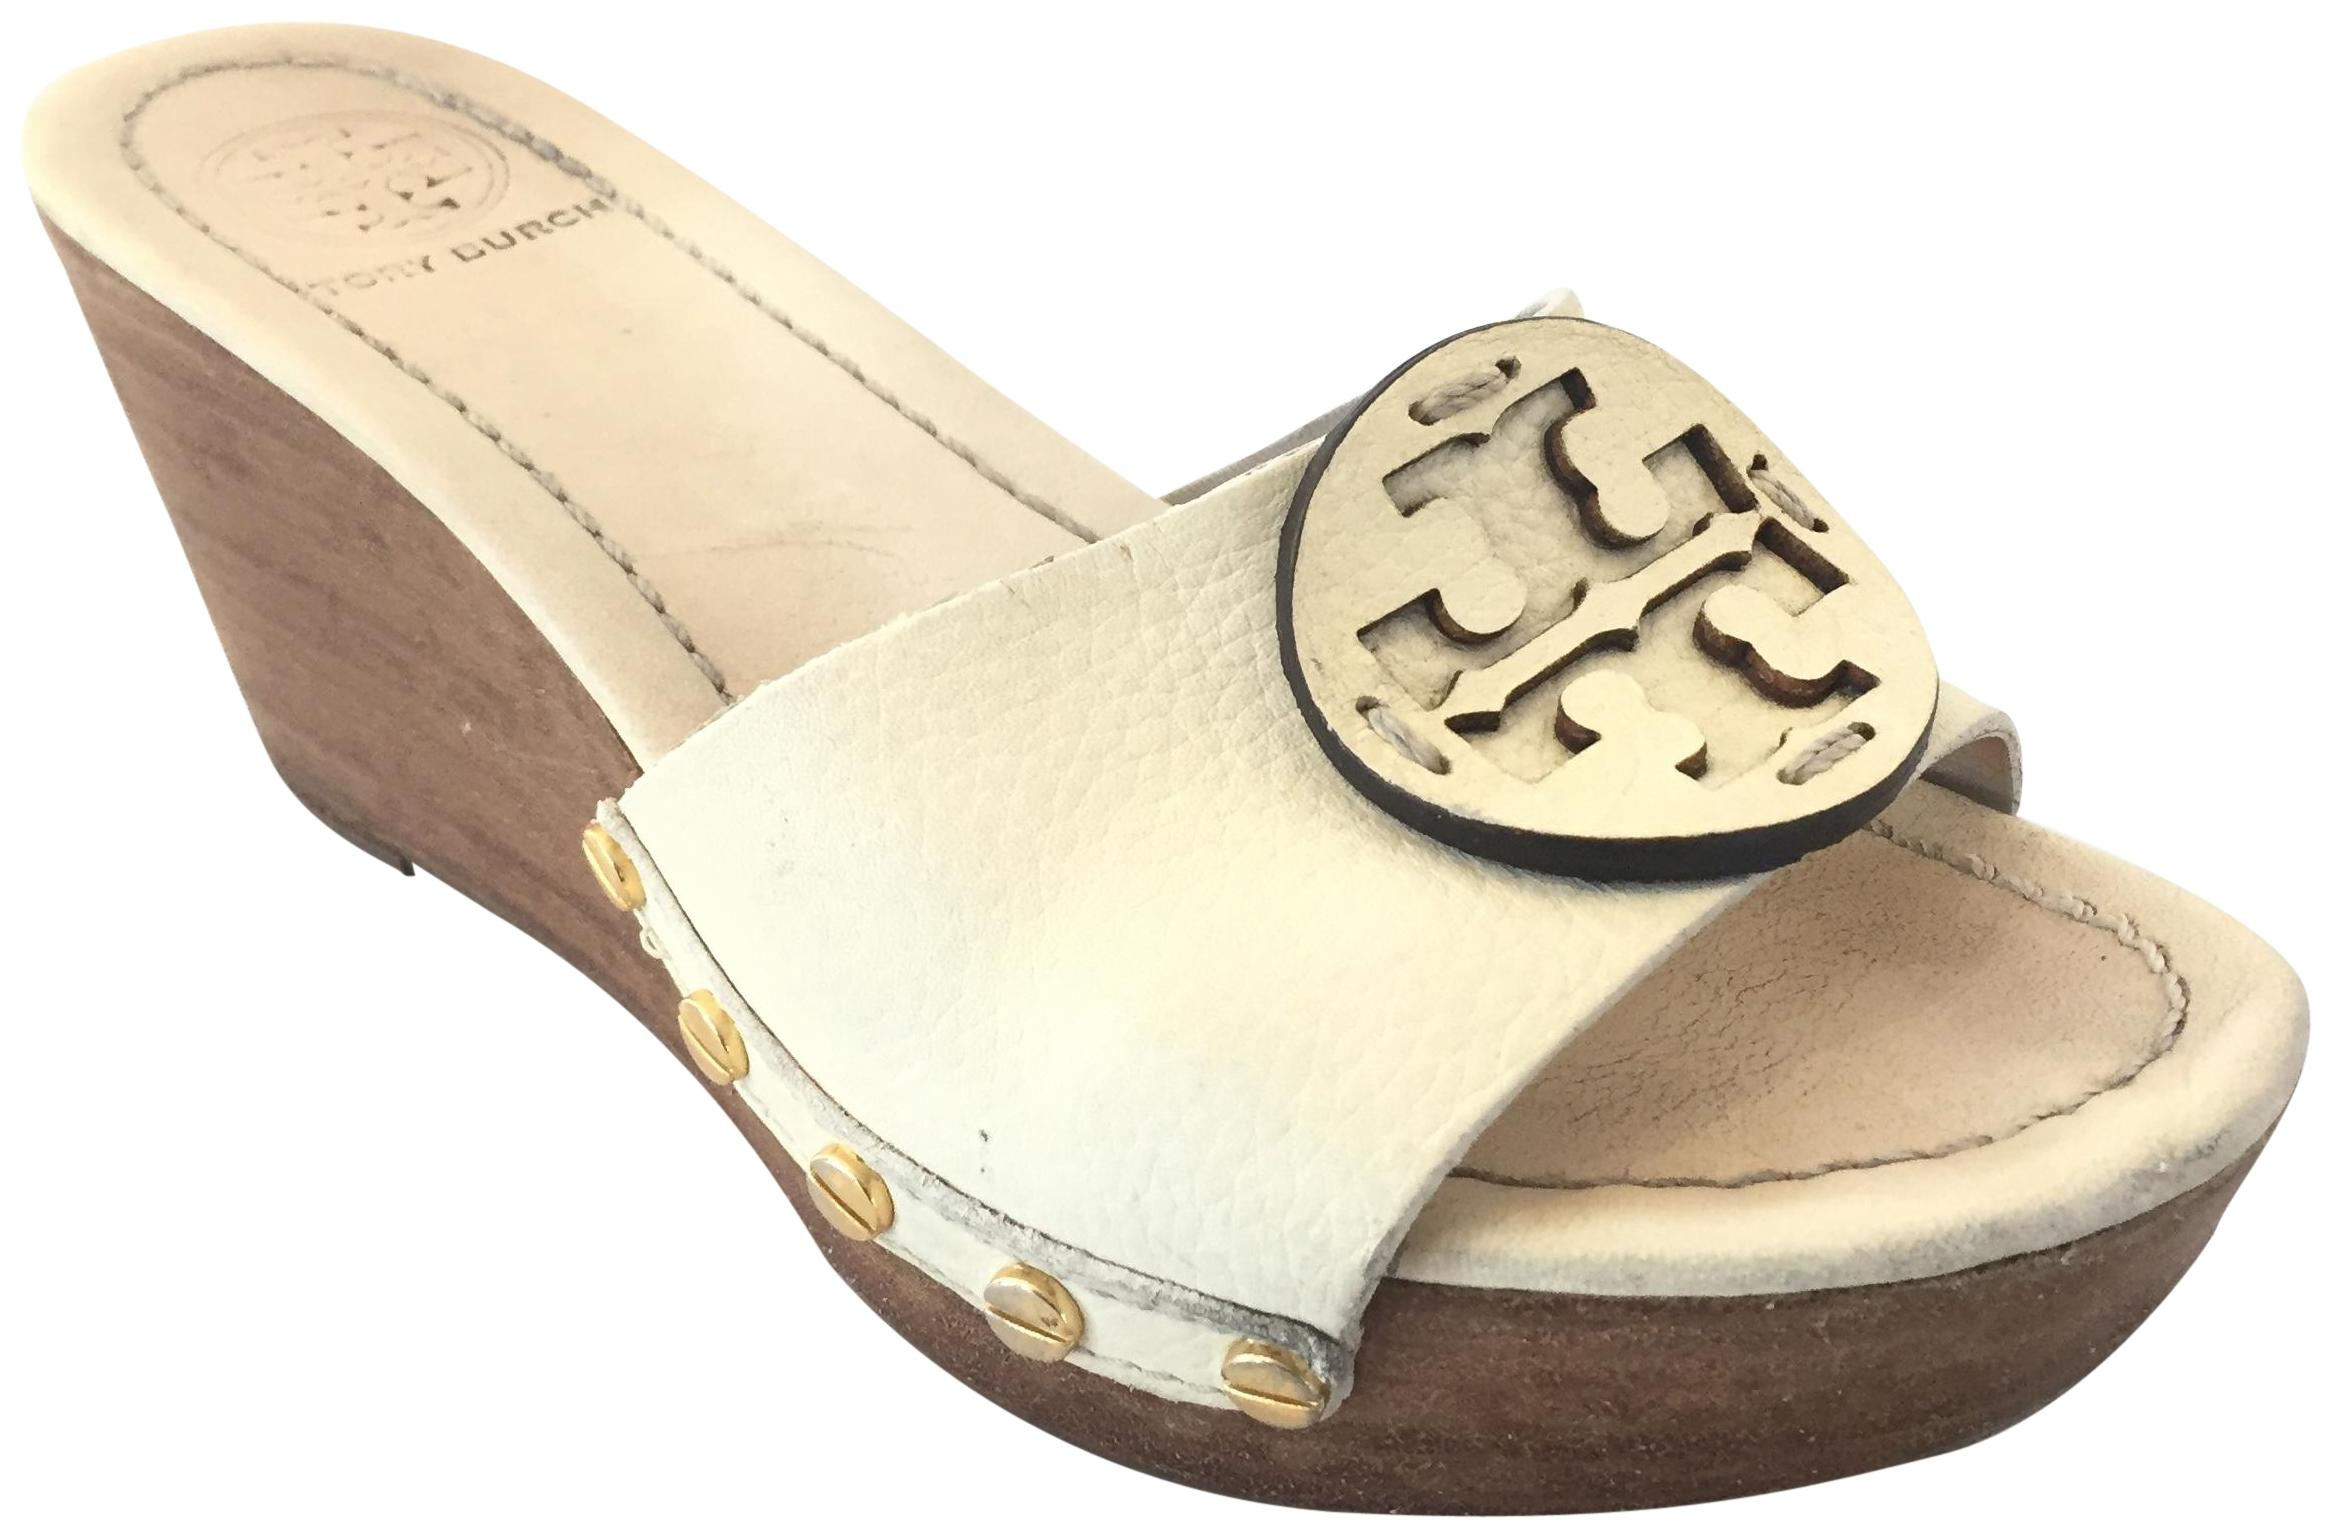 Tory Burch Bleach 138 Patti Wedge 796bdf Sandalo Sandalo Wedge 796bdf Wedge   45026c